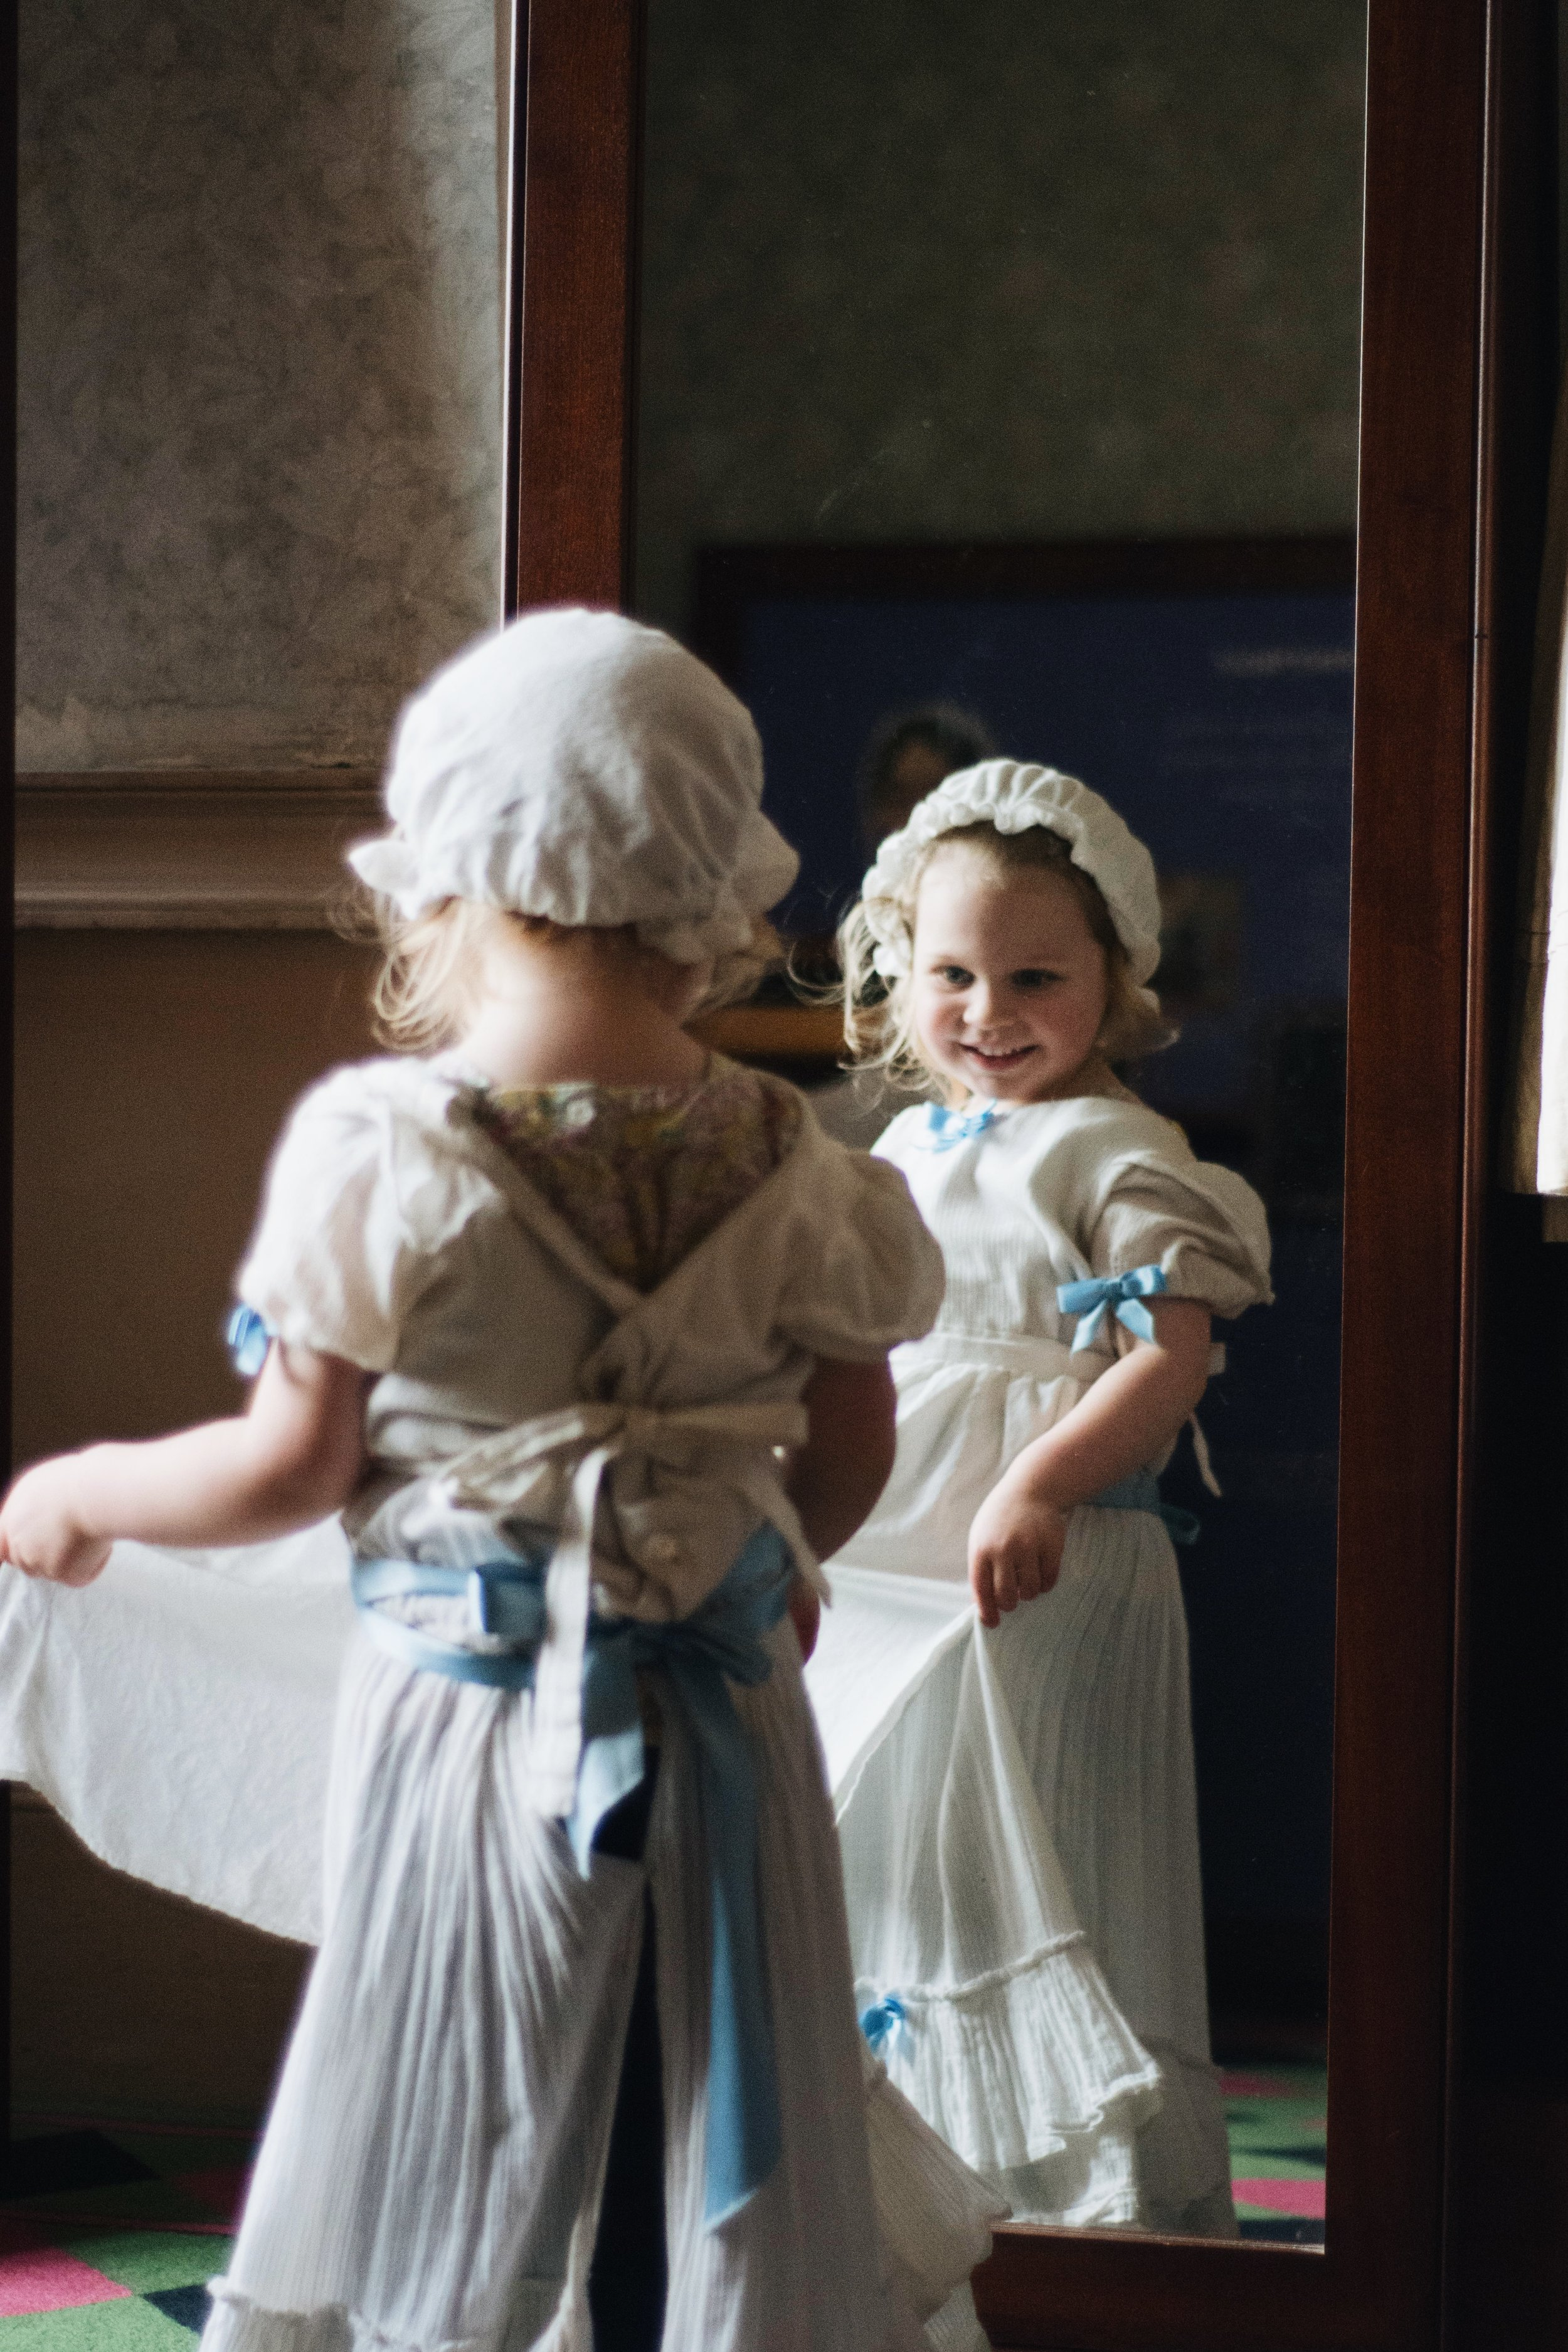 Of course Sophie LOVED trying on the dresses.